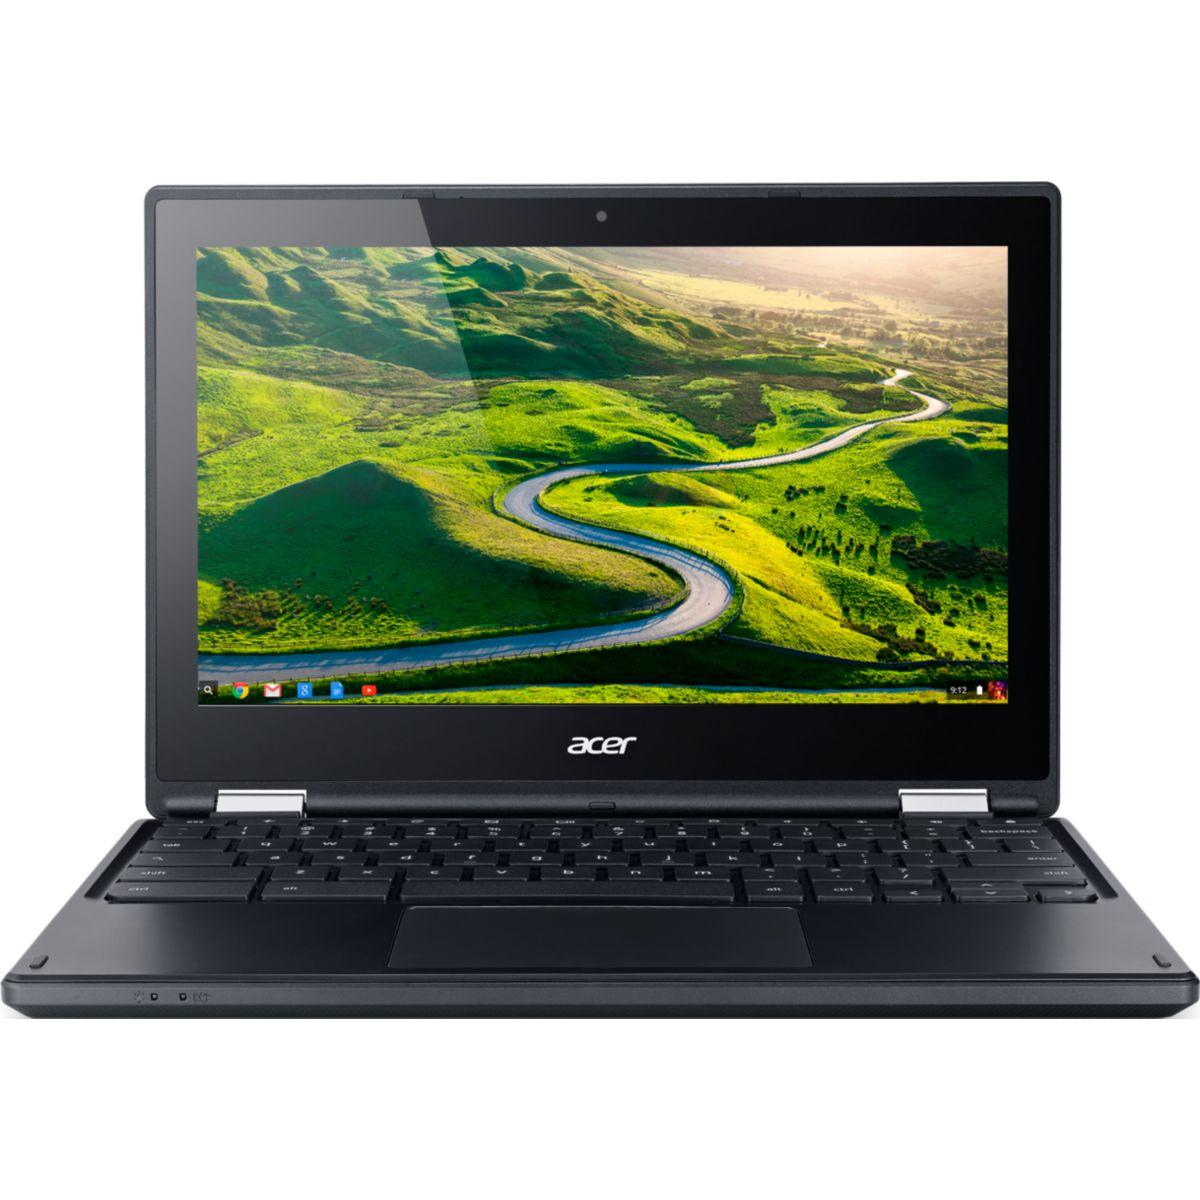 Chromebook acer r11 c738t-c4je (photo)